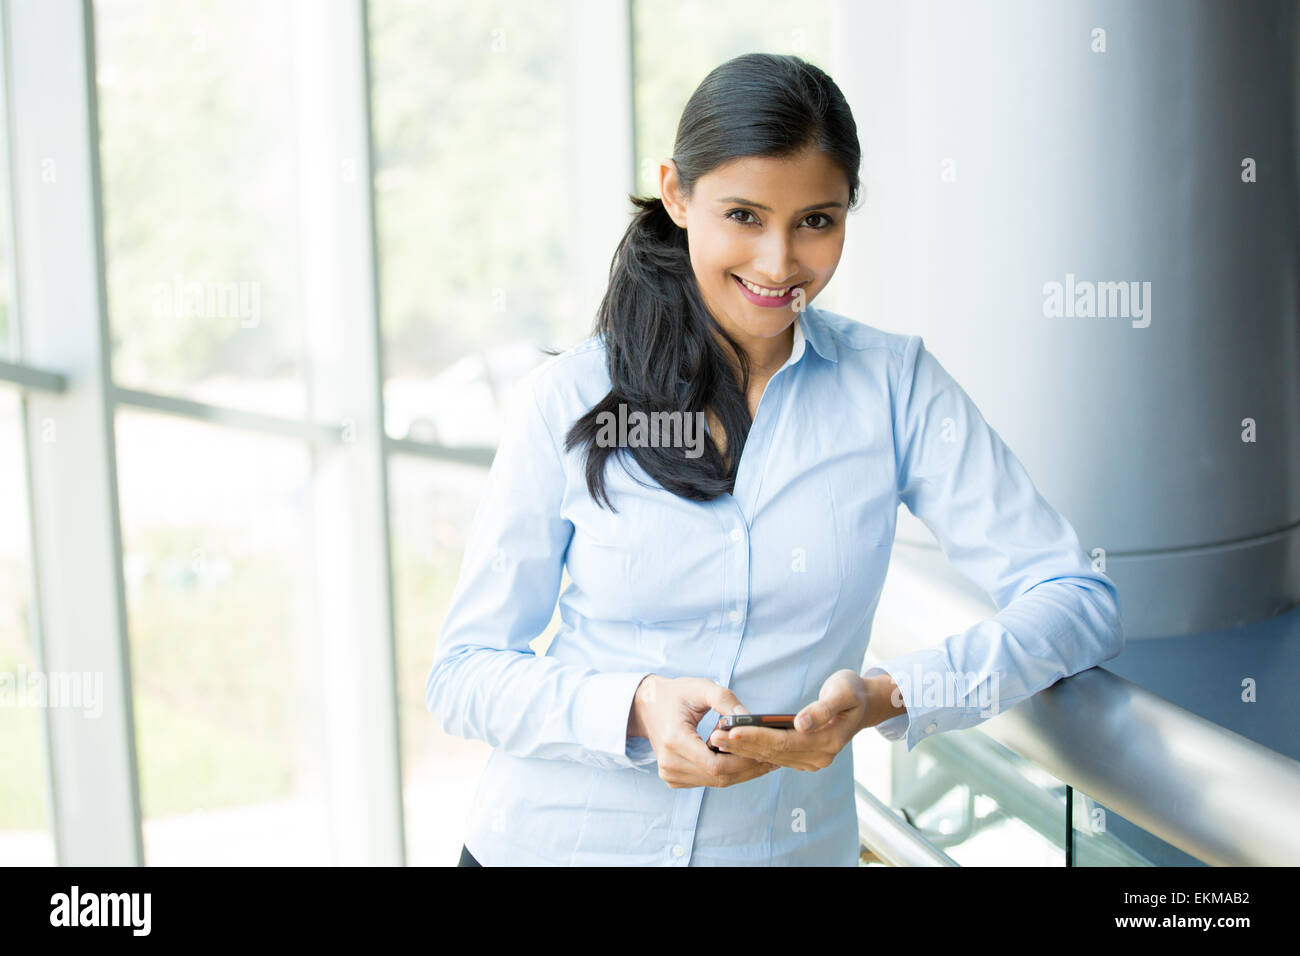 Closeup portrait, joyful gorgeous woman using mobile smartphone device, isolated indoors office background - Stock Image